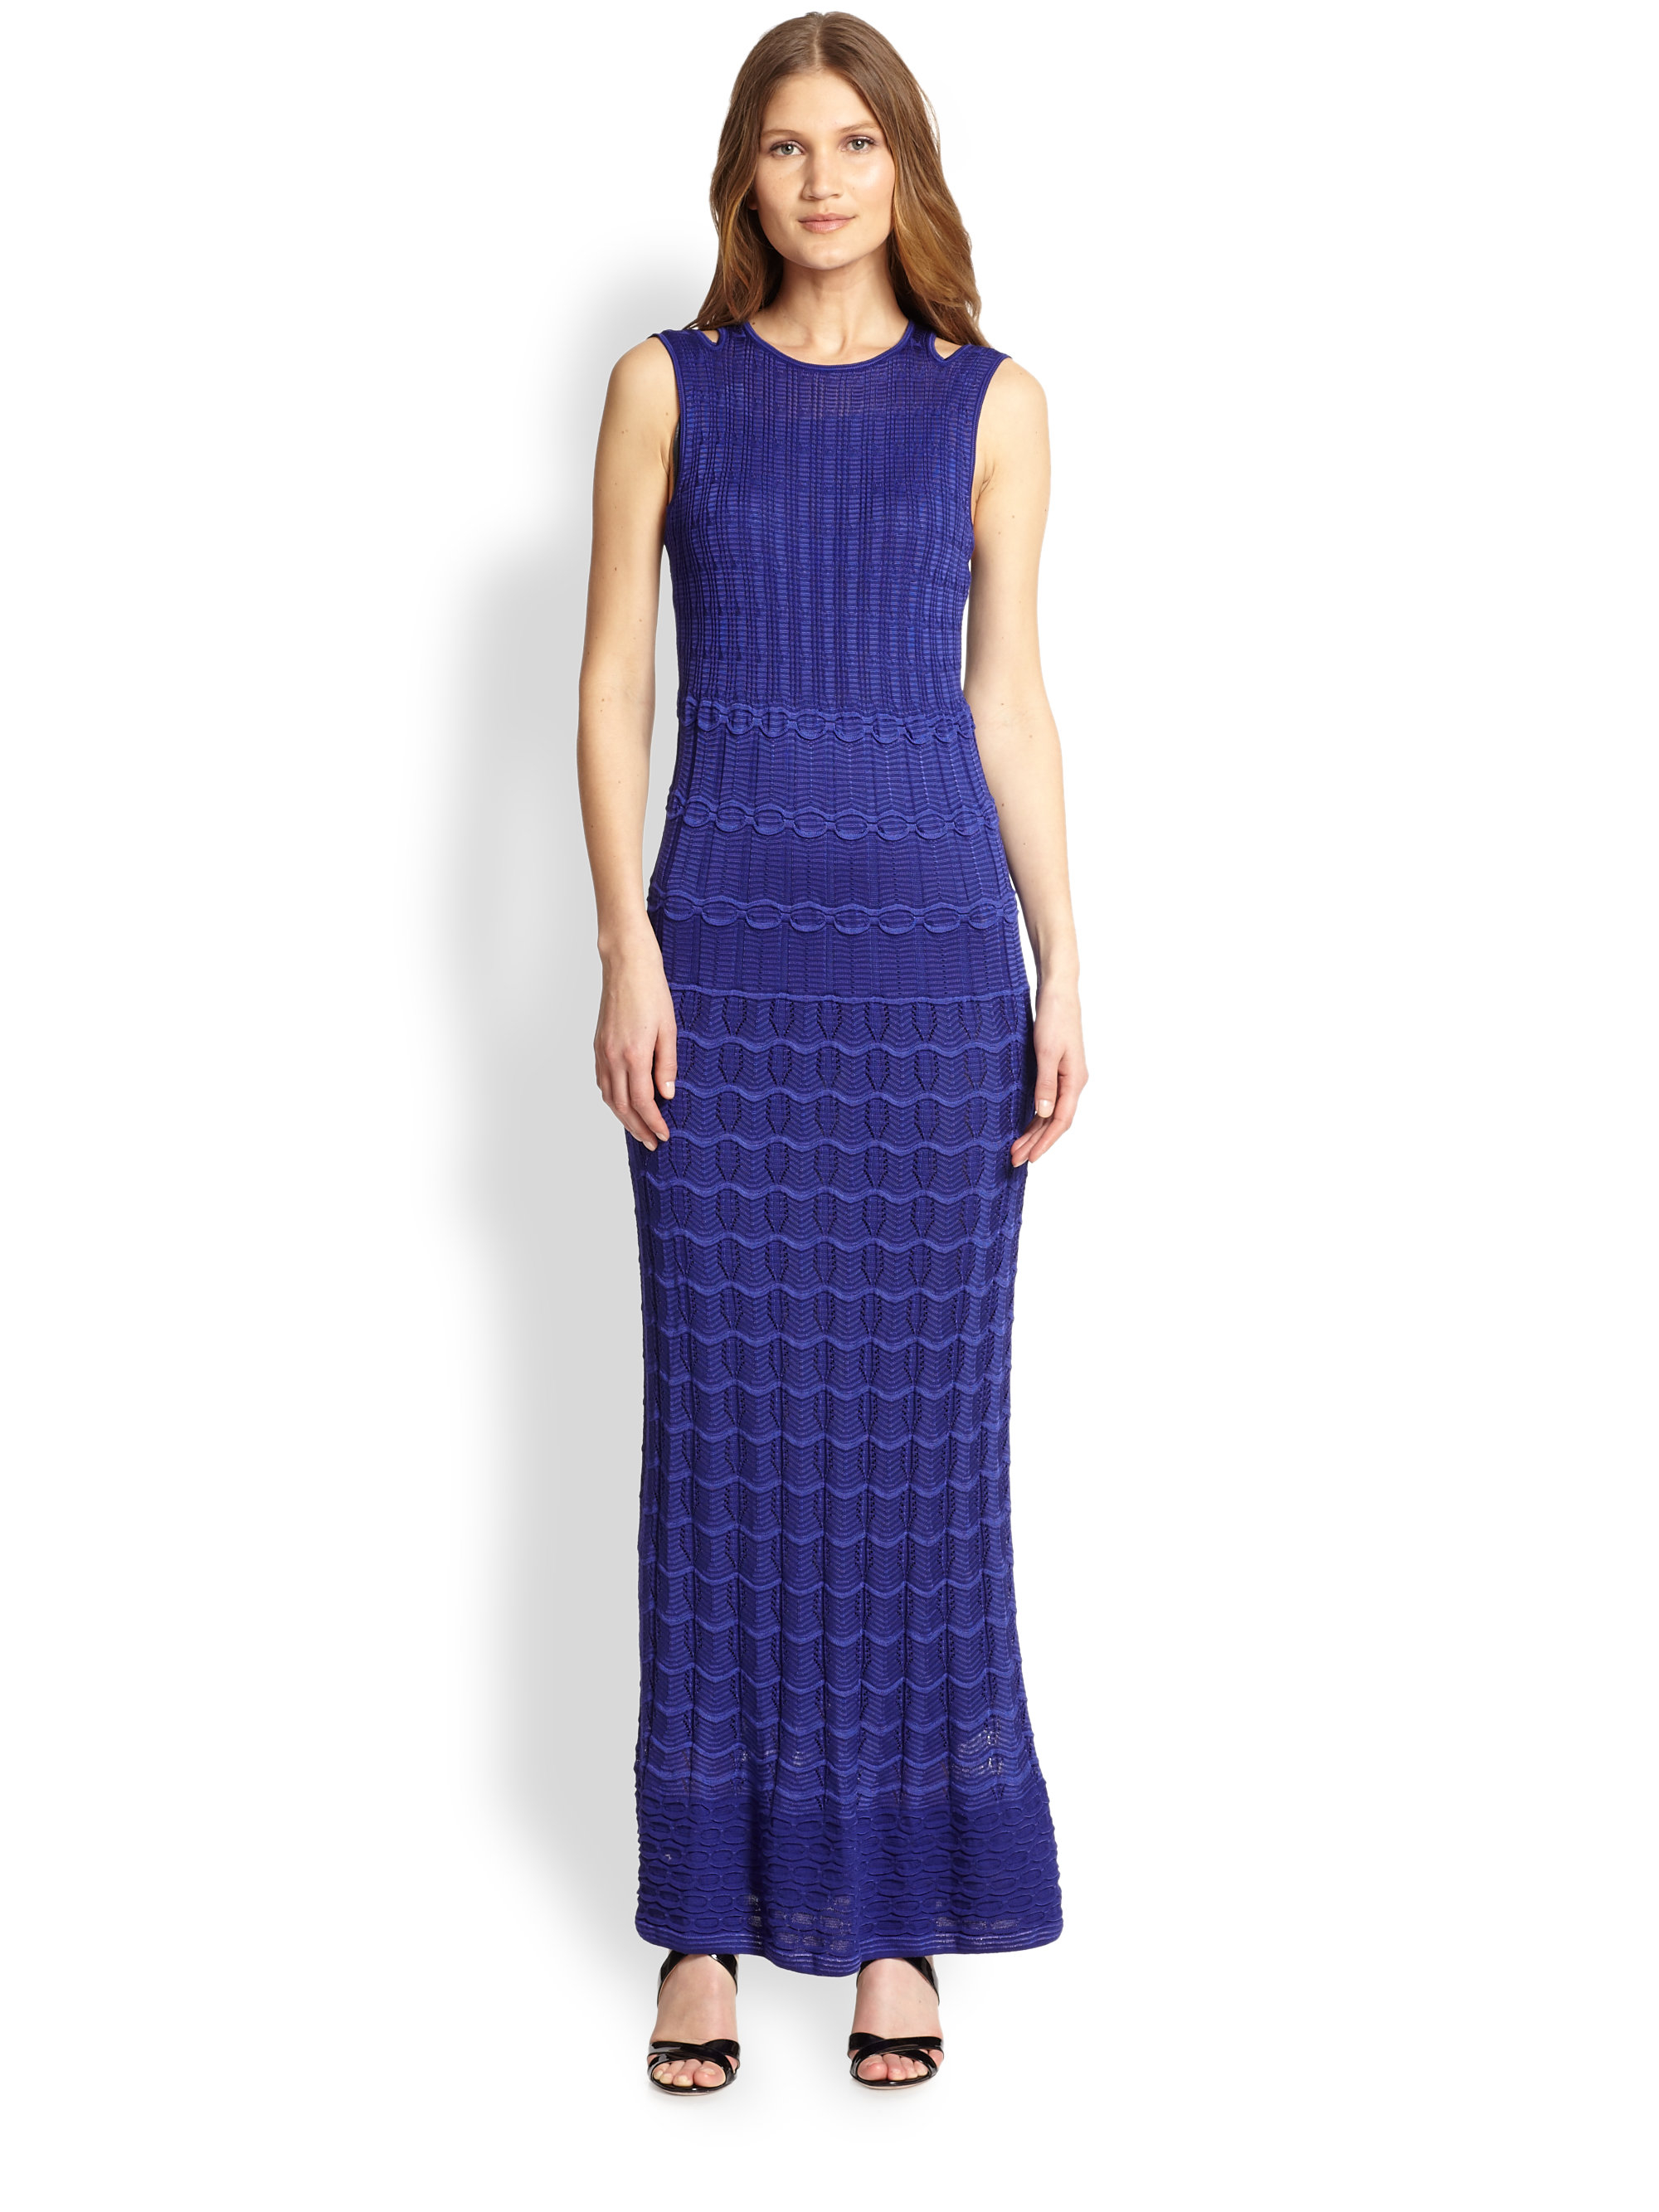 M missoni Textured Knit Maxi Dress in Purple  Lyst